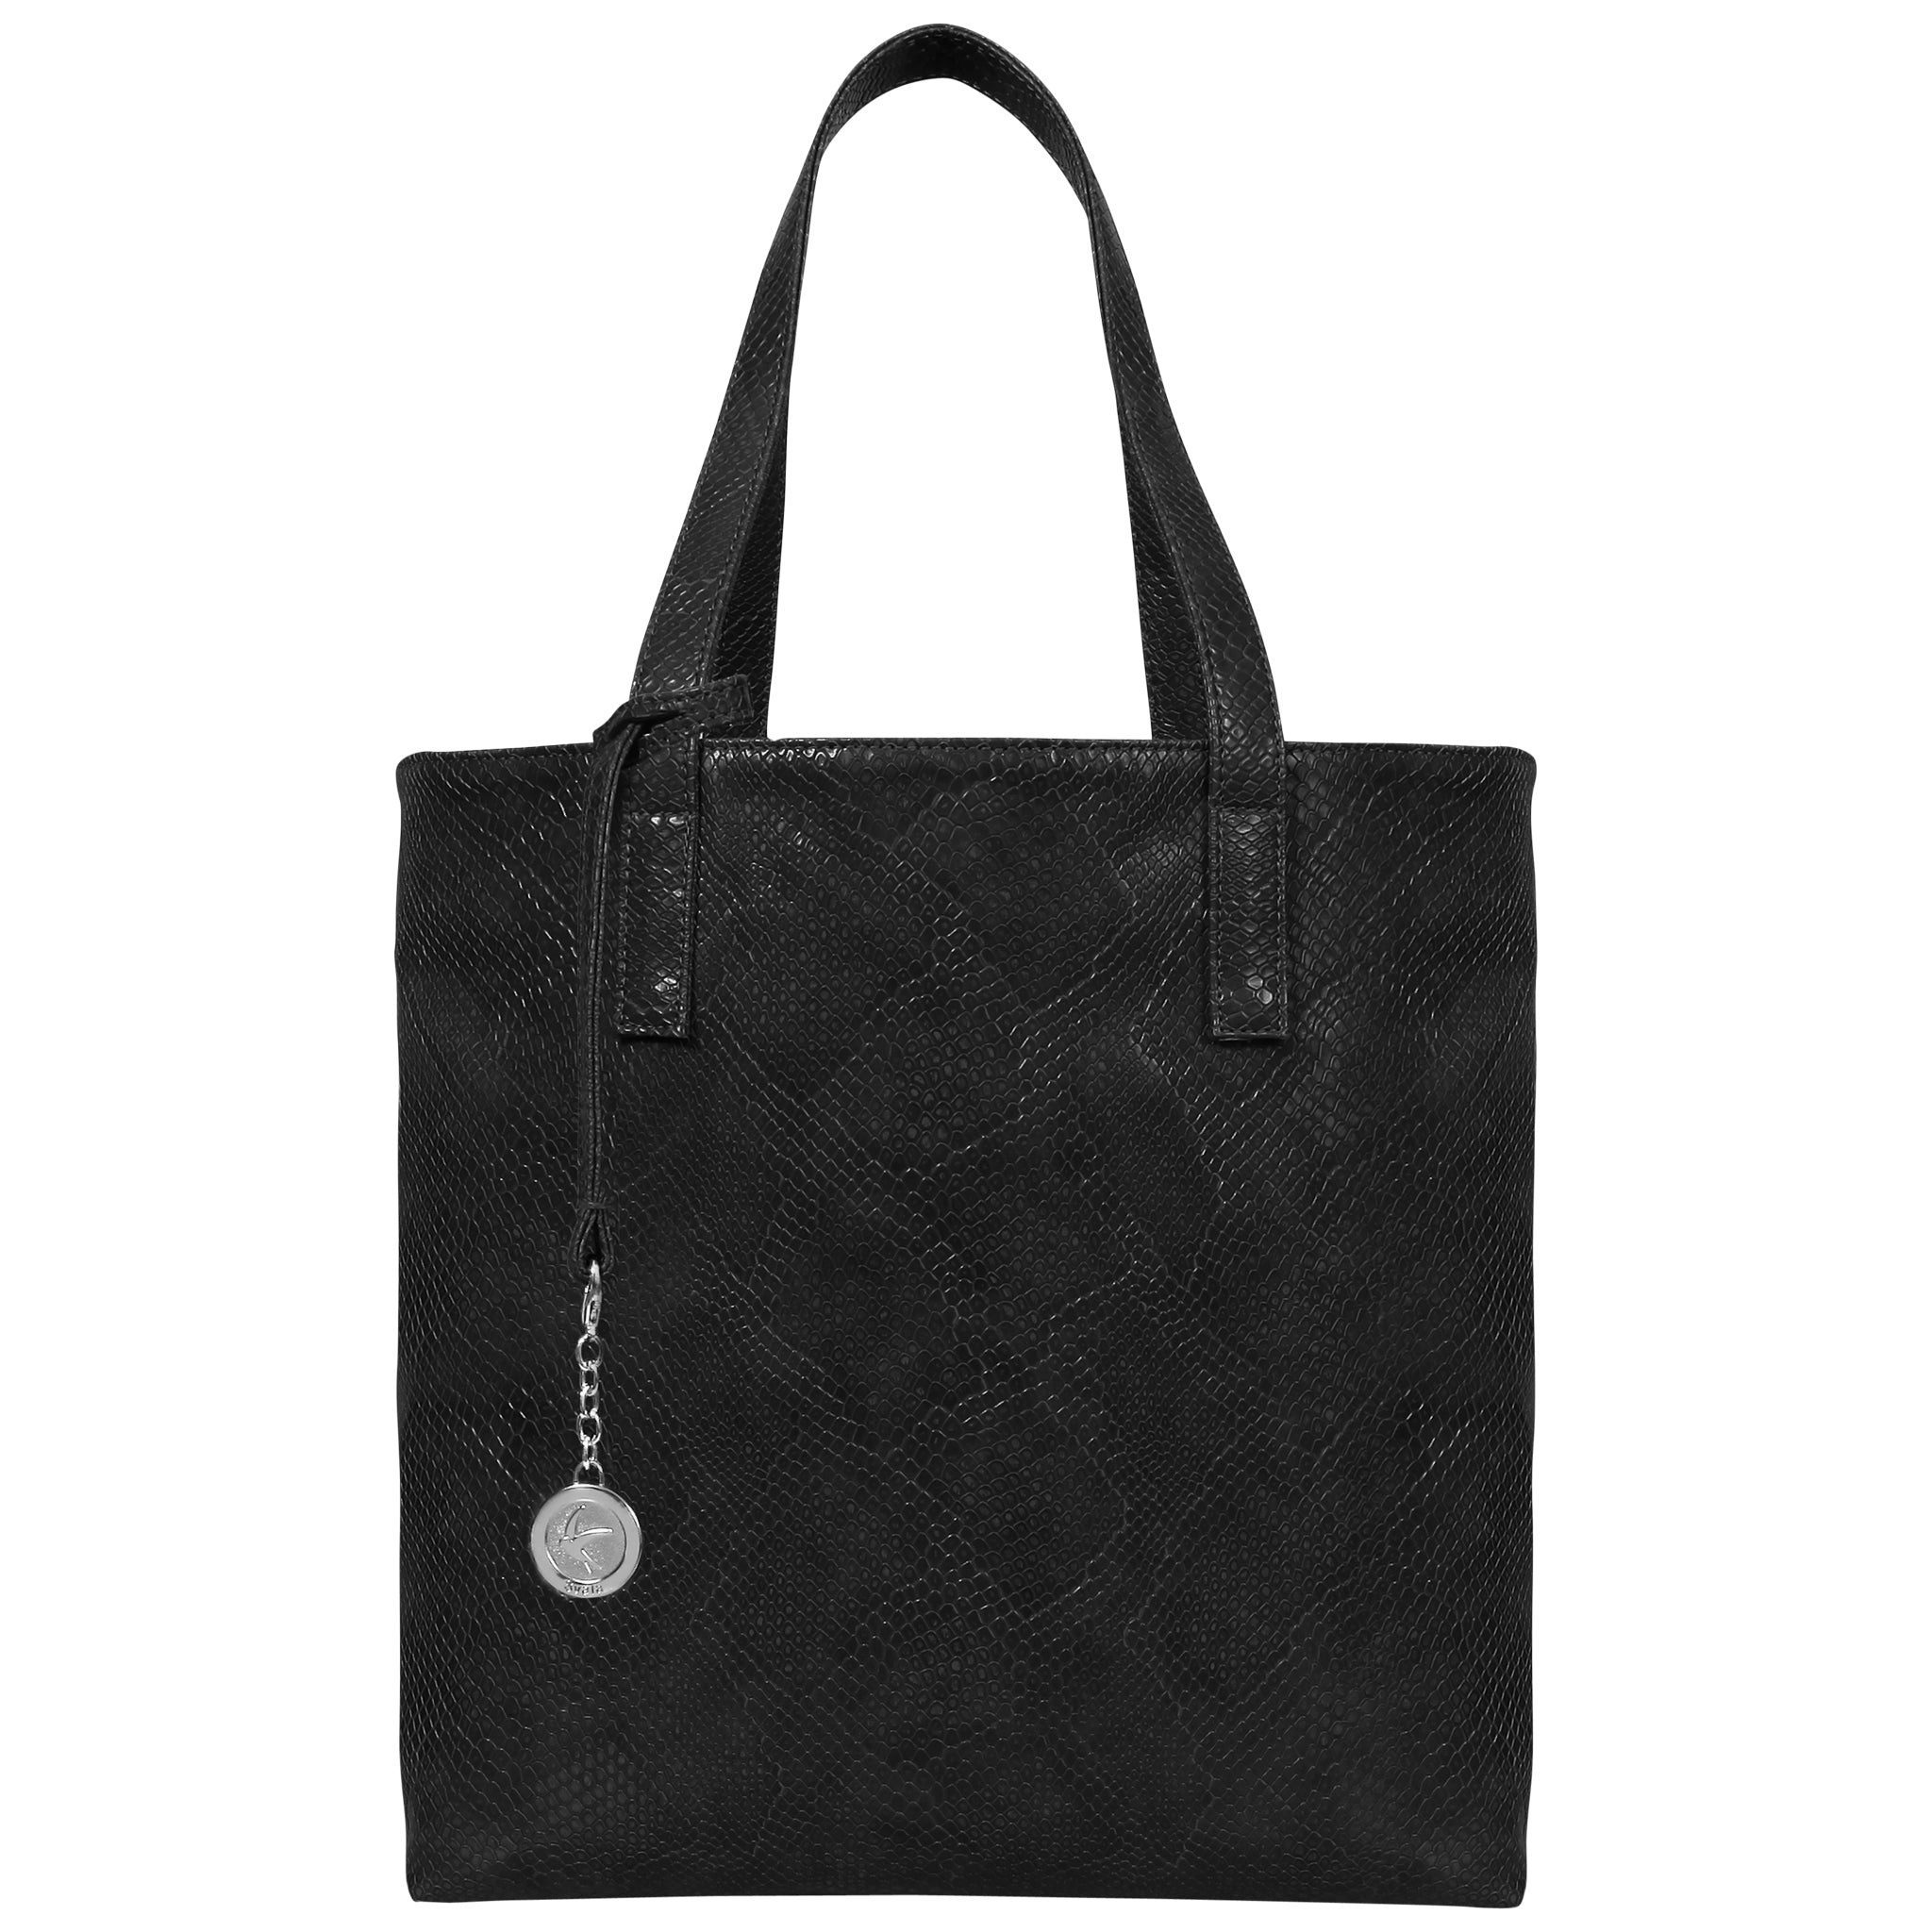 Black Faux Snakeskin Vegan Leather Tote, Simma, Svala